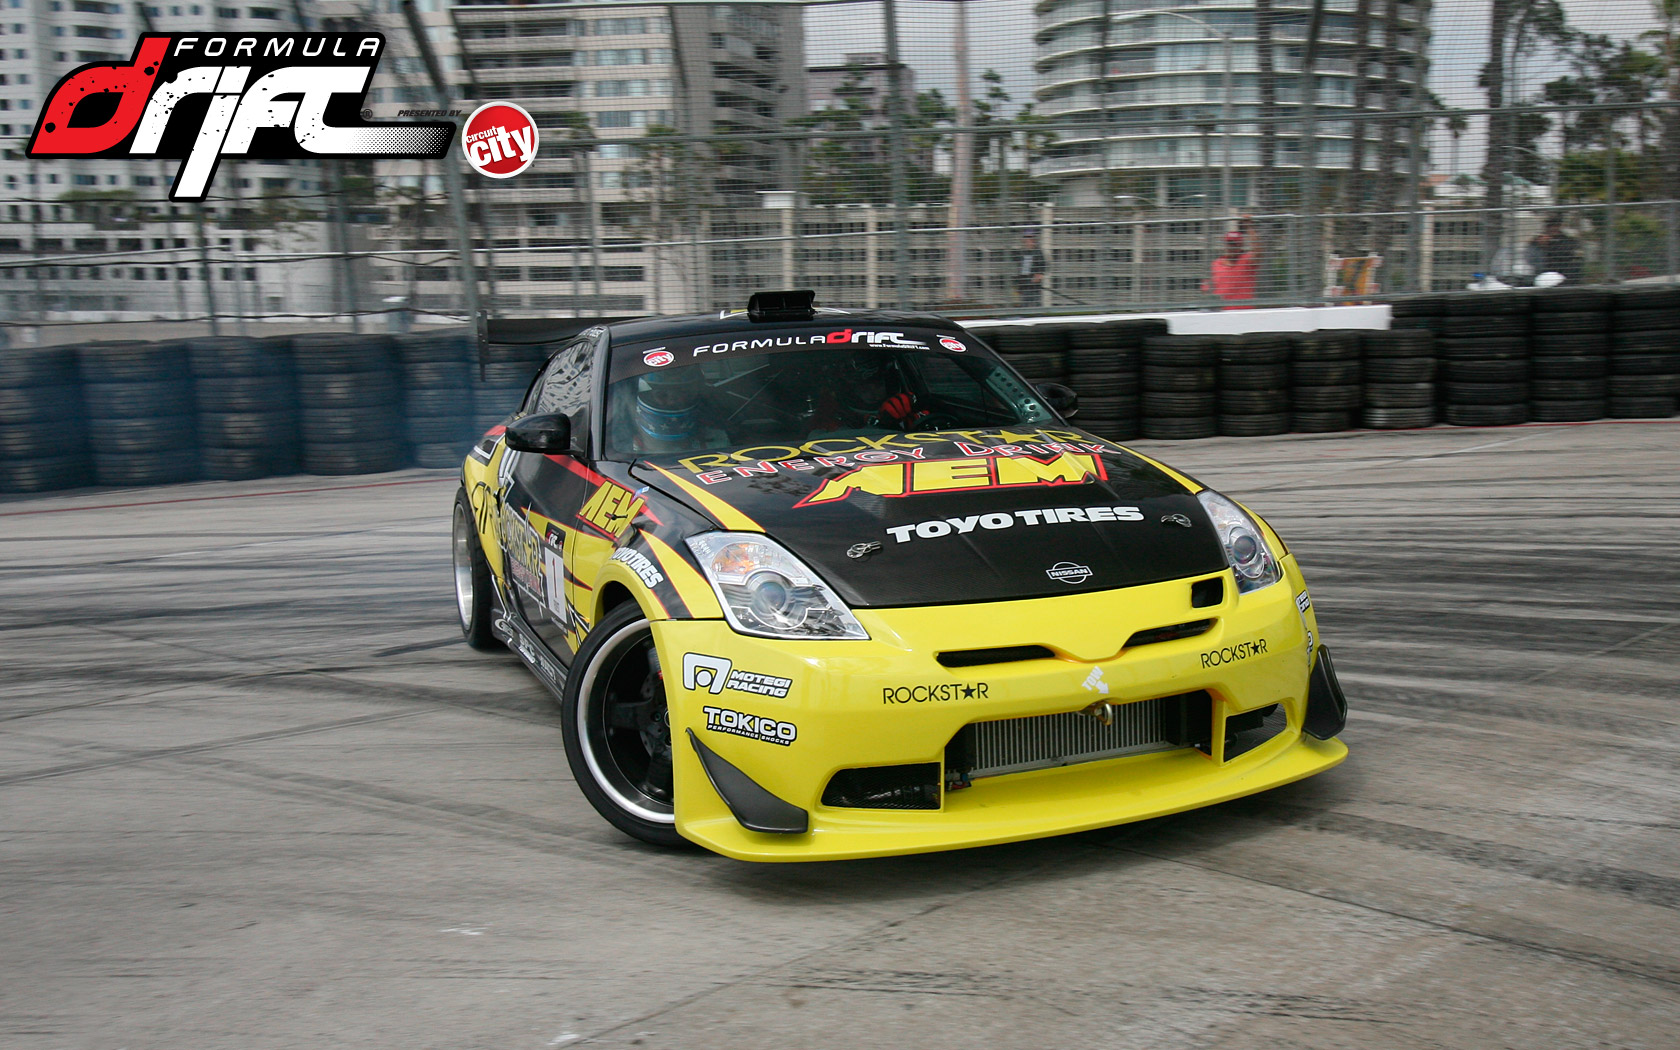 Formula Drift Wallpaper Wallpapersafari